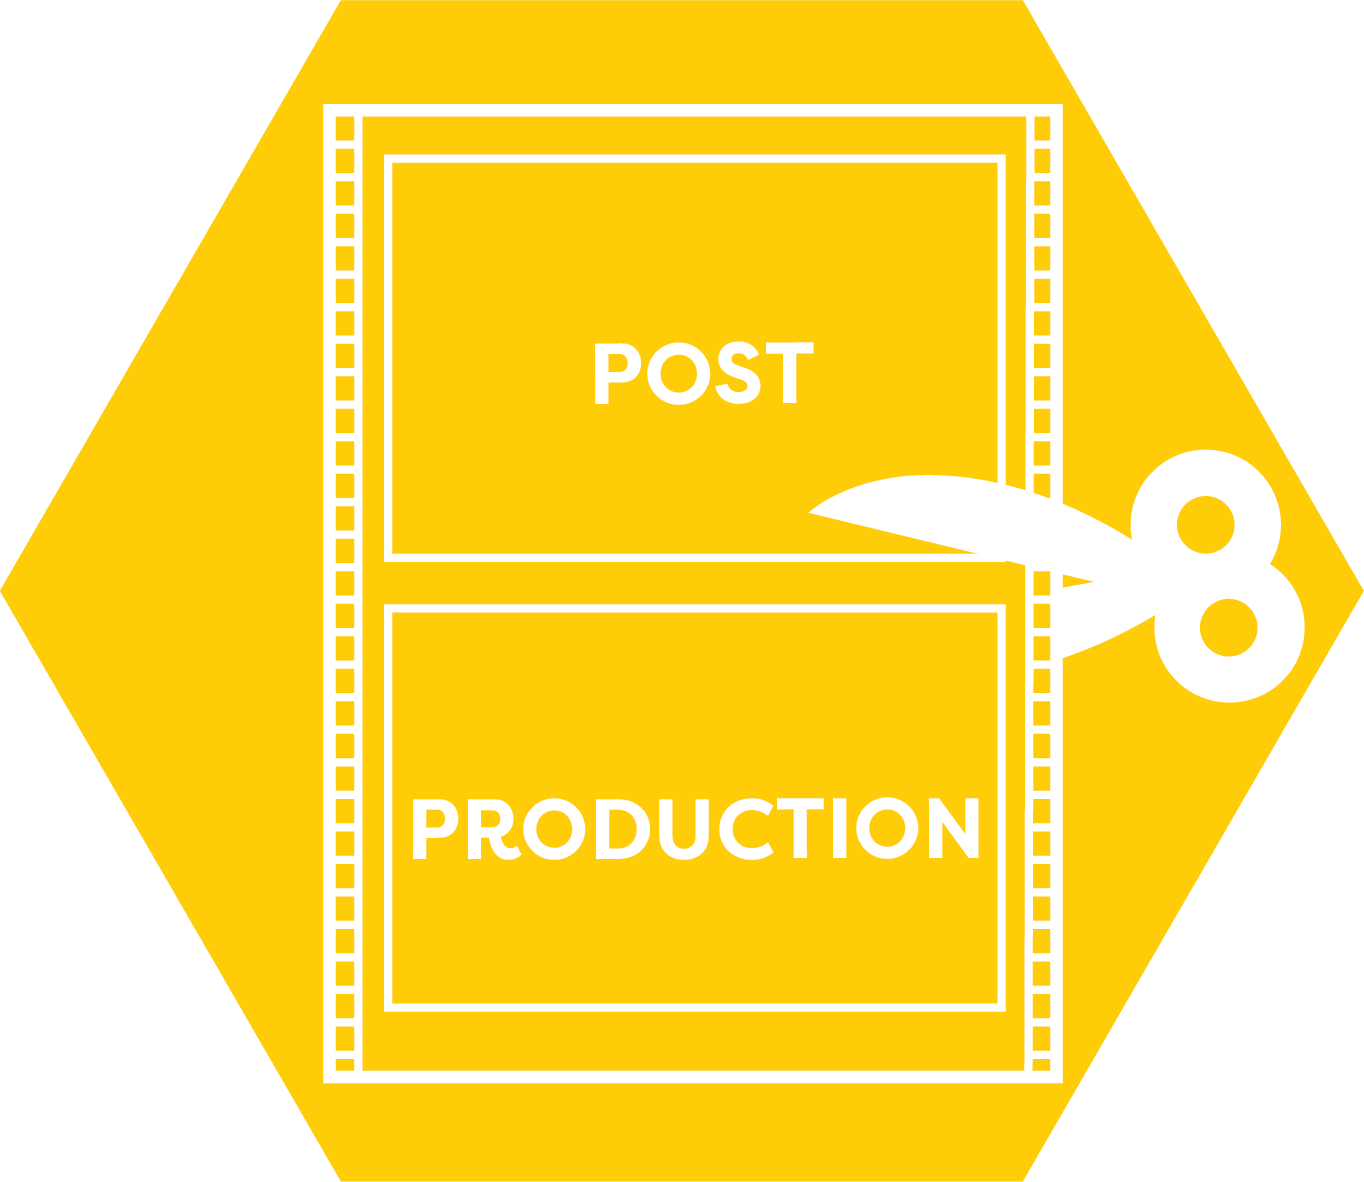 postproduction icon